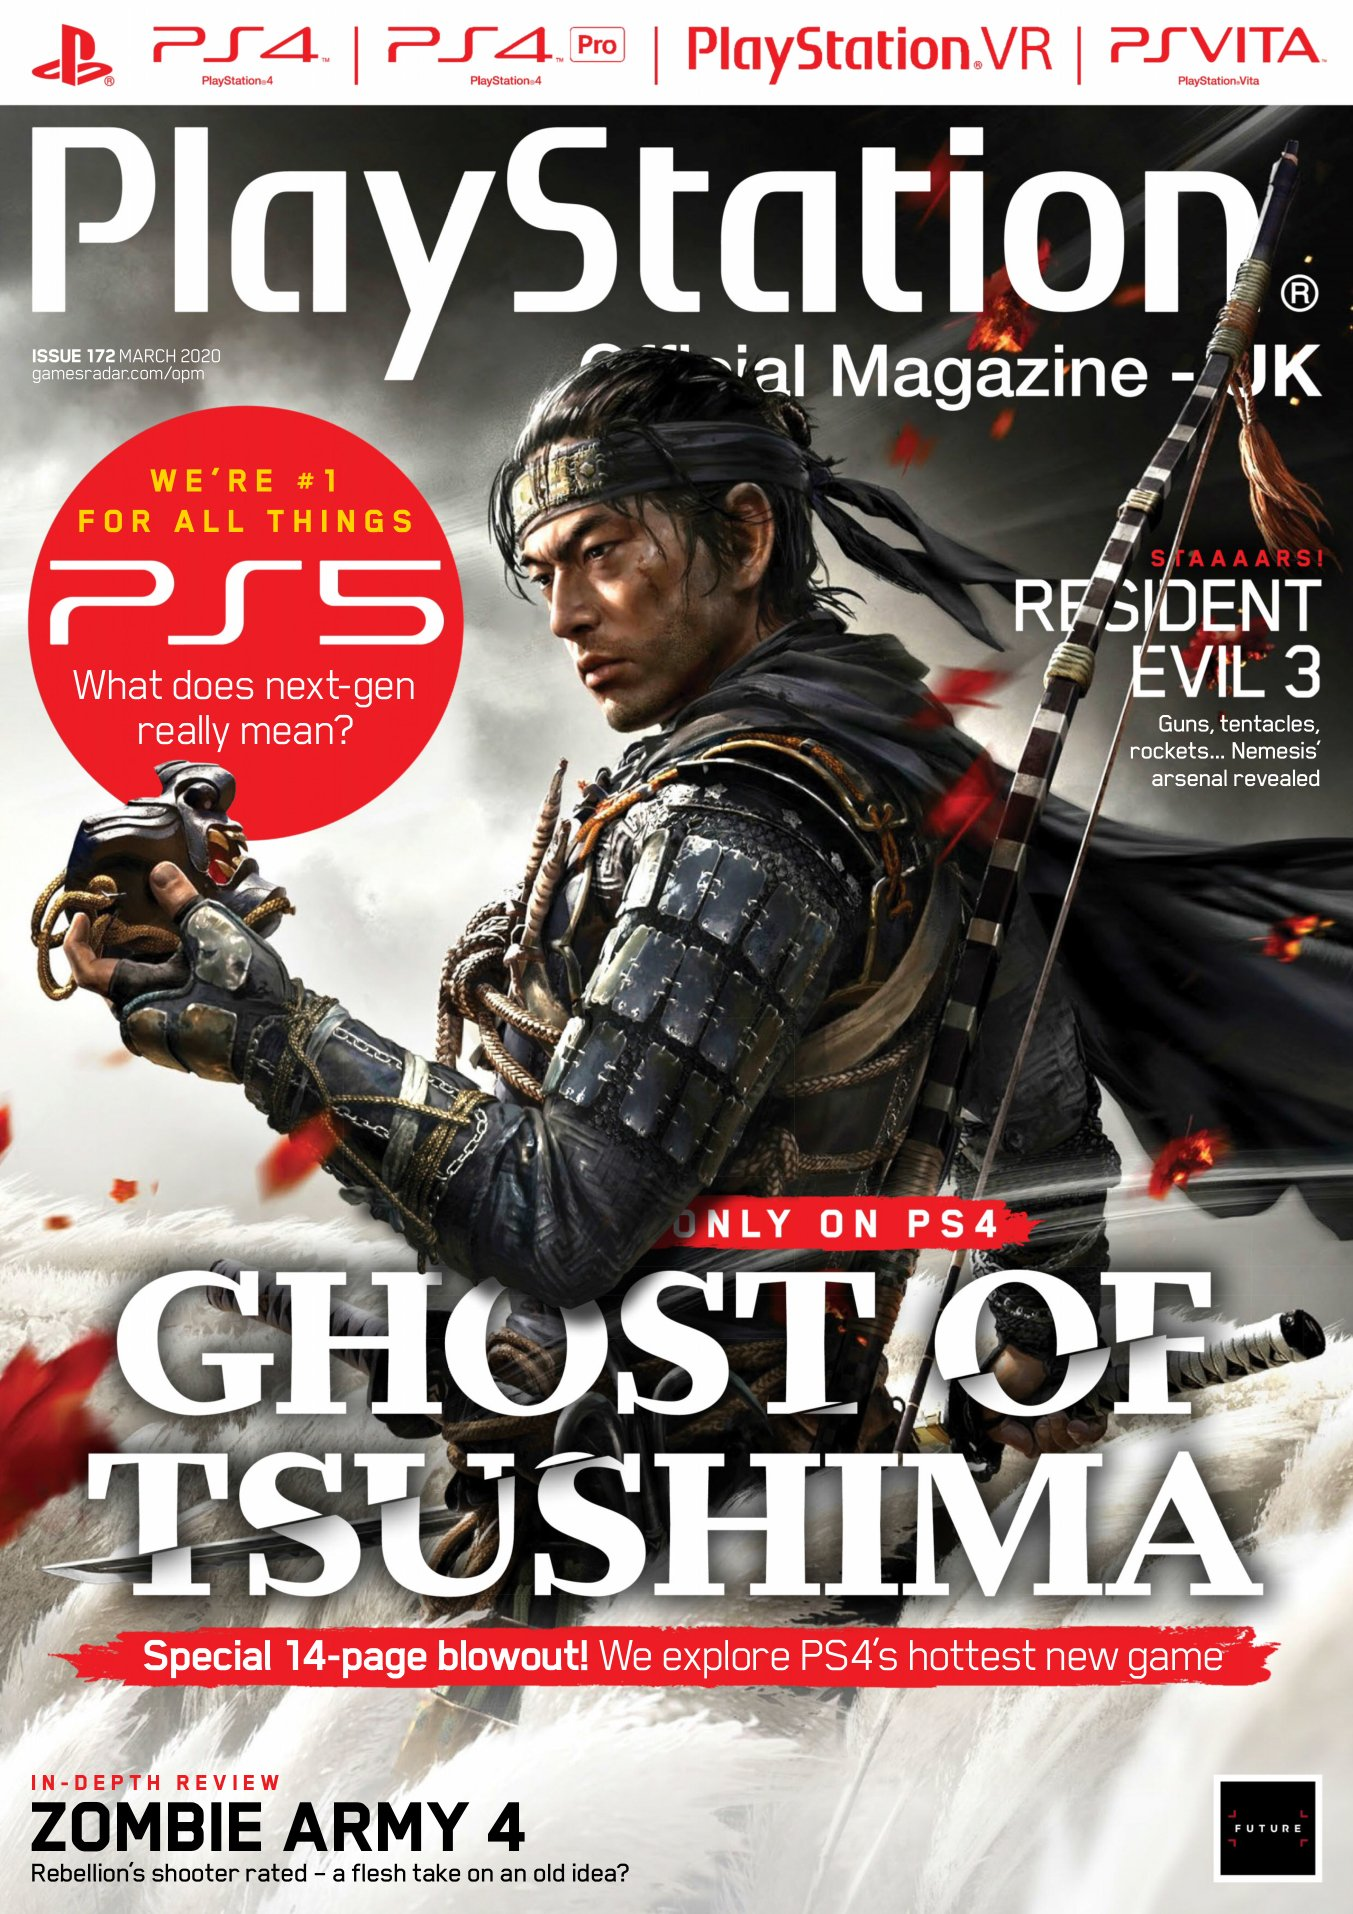 Playstation Official Magazine UK 172 (March 2020)